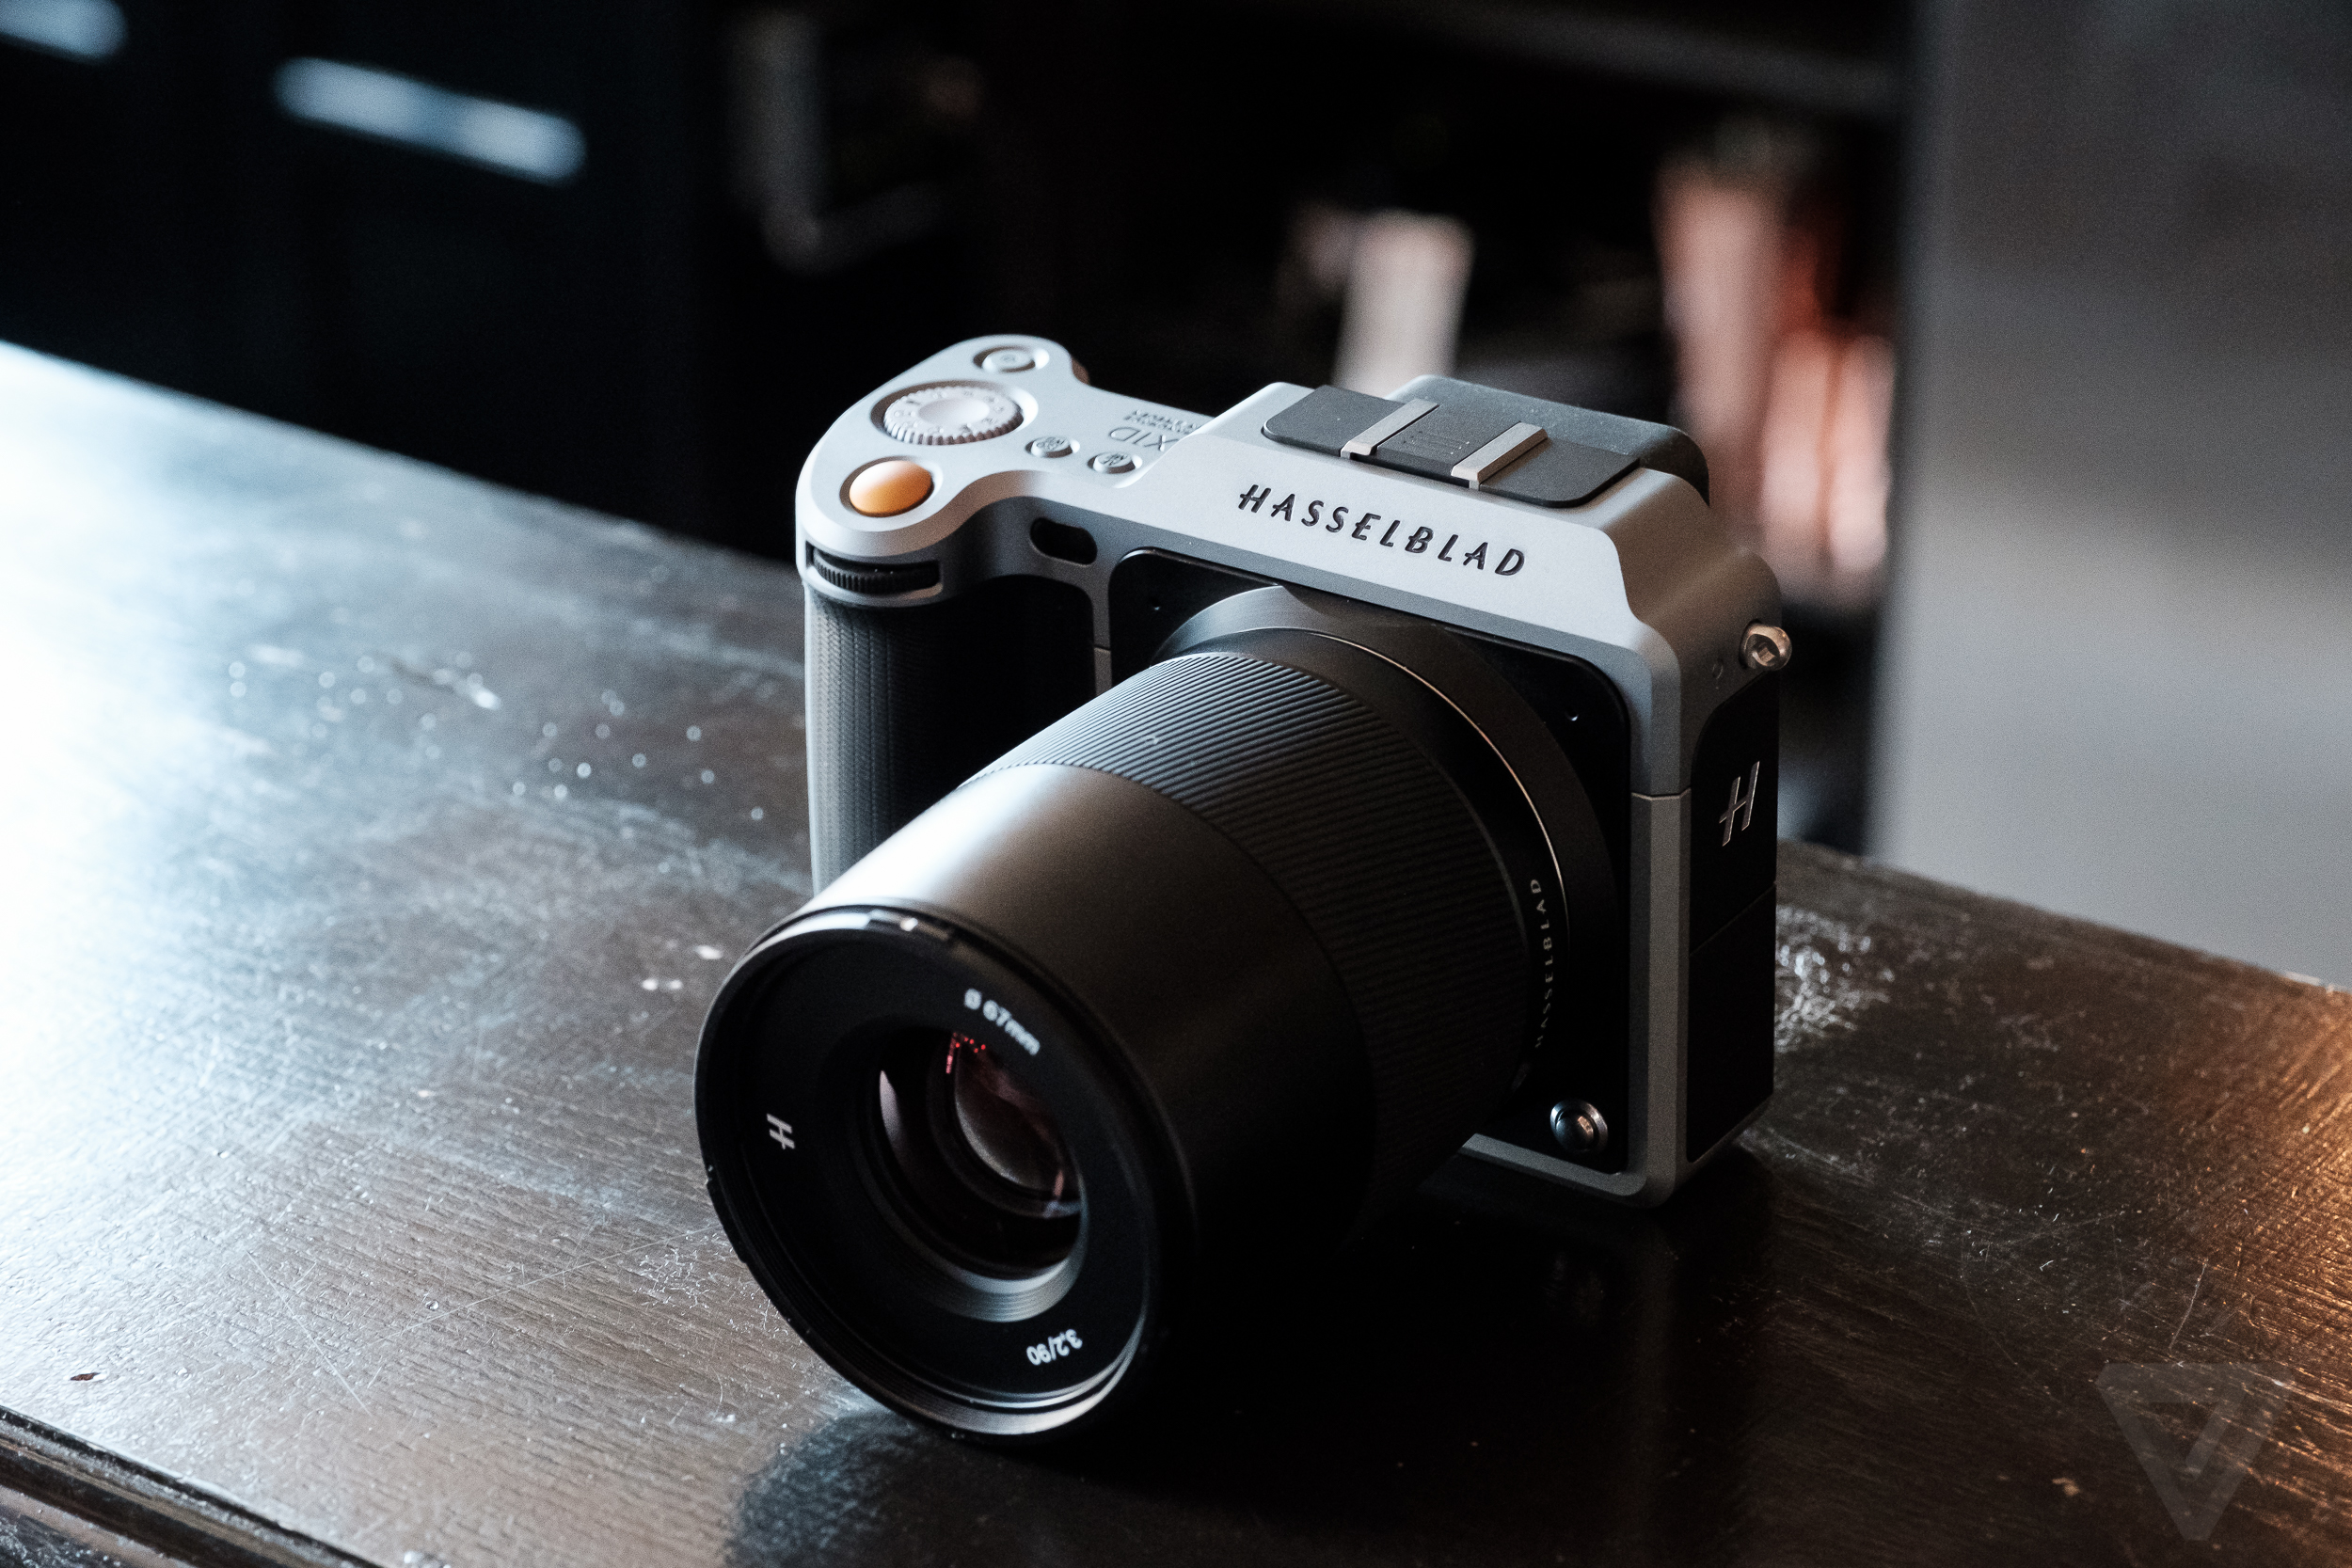 Hasselblad's X1D is a photography nerd's dream camera - The Verge